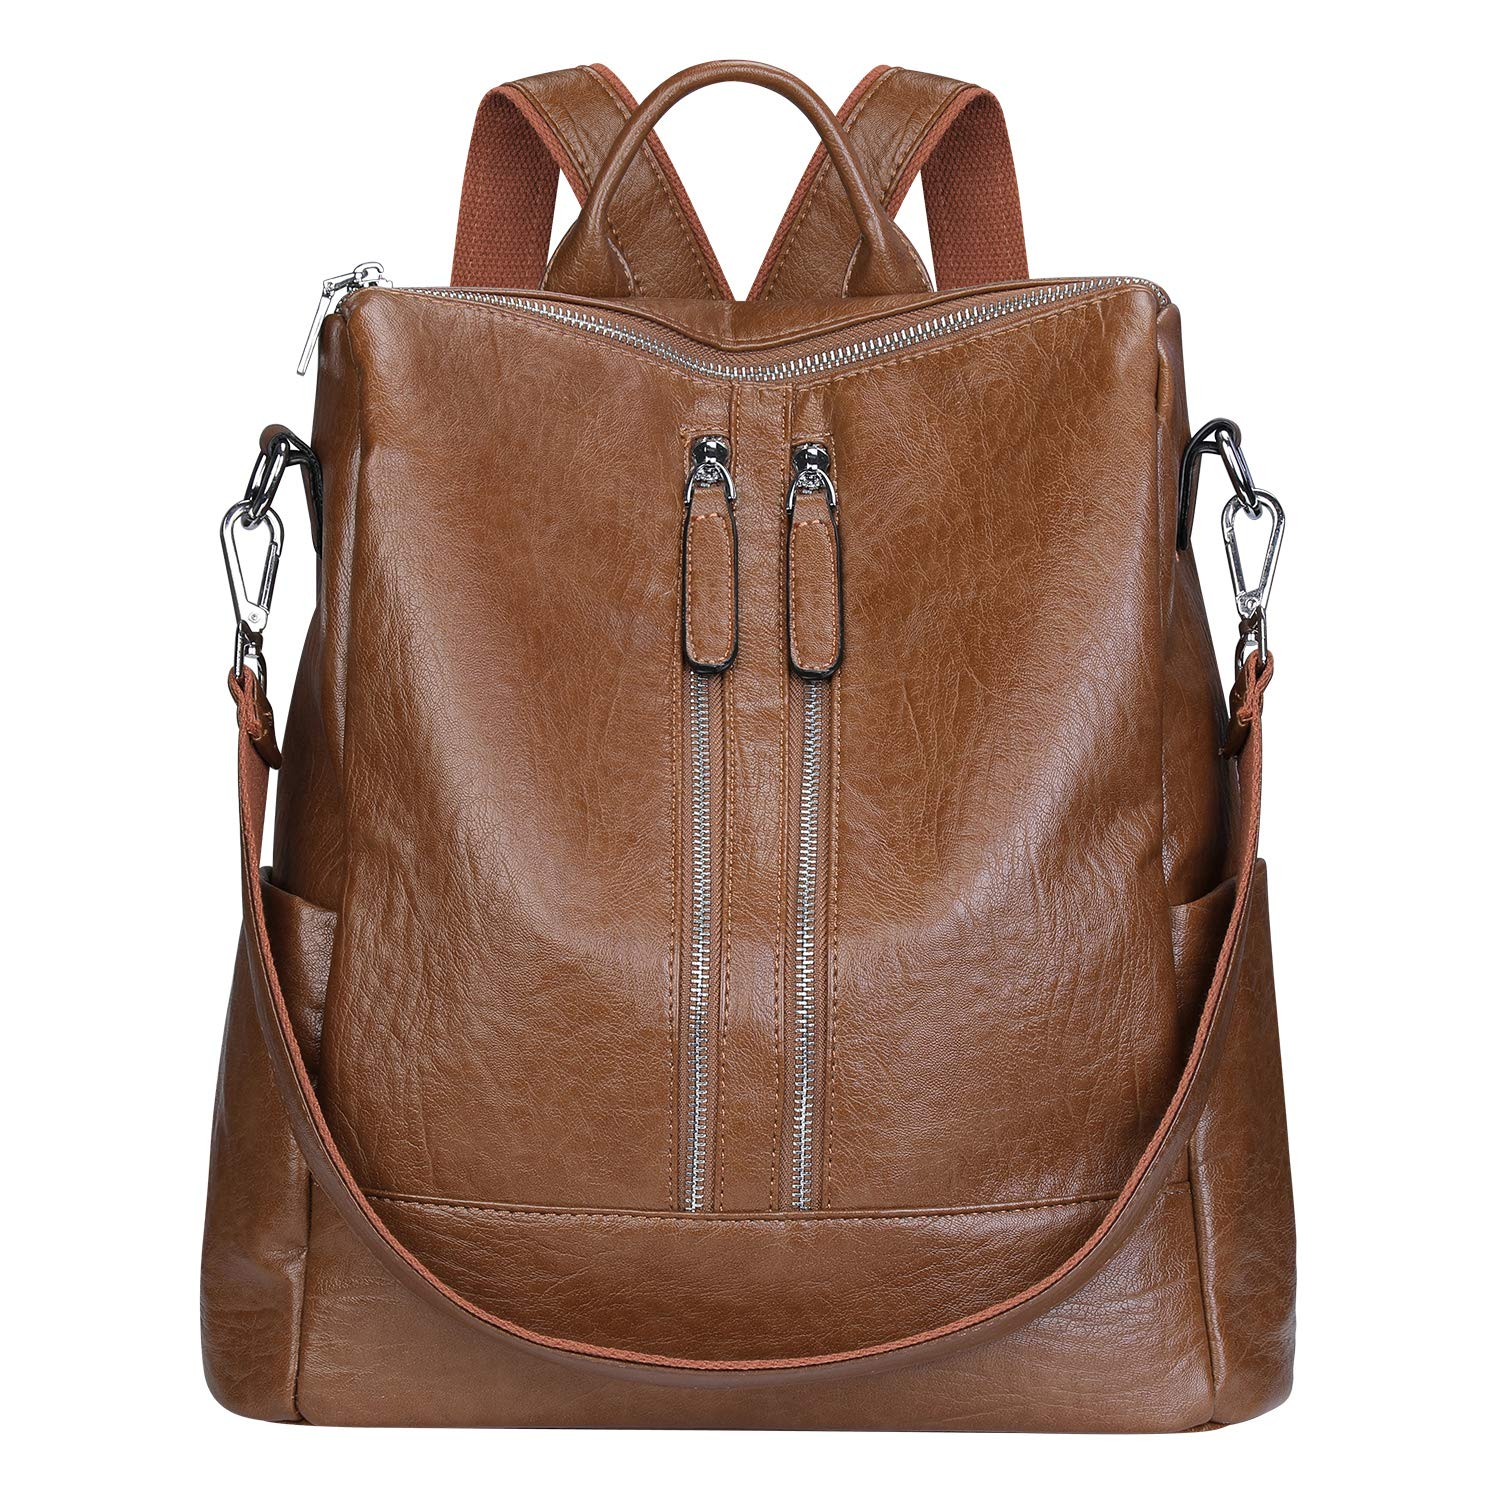 ca71d2dd2e29 Amazon.com  SAMSHOWME Lightweight Women PU Leather Backpack Shoulder Bag  Casual Purse (brown)  NEWSHOWS